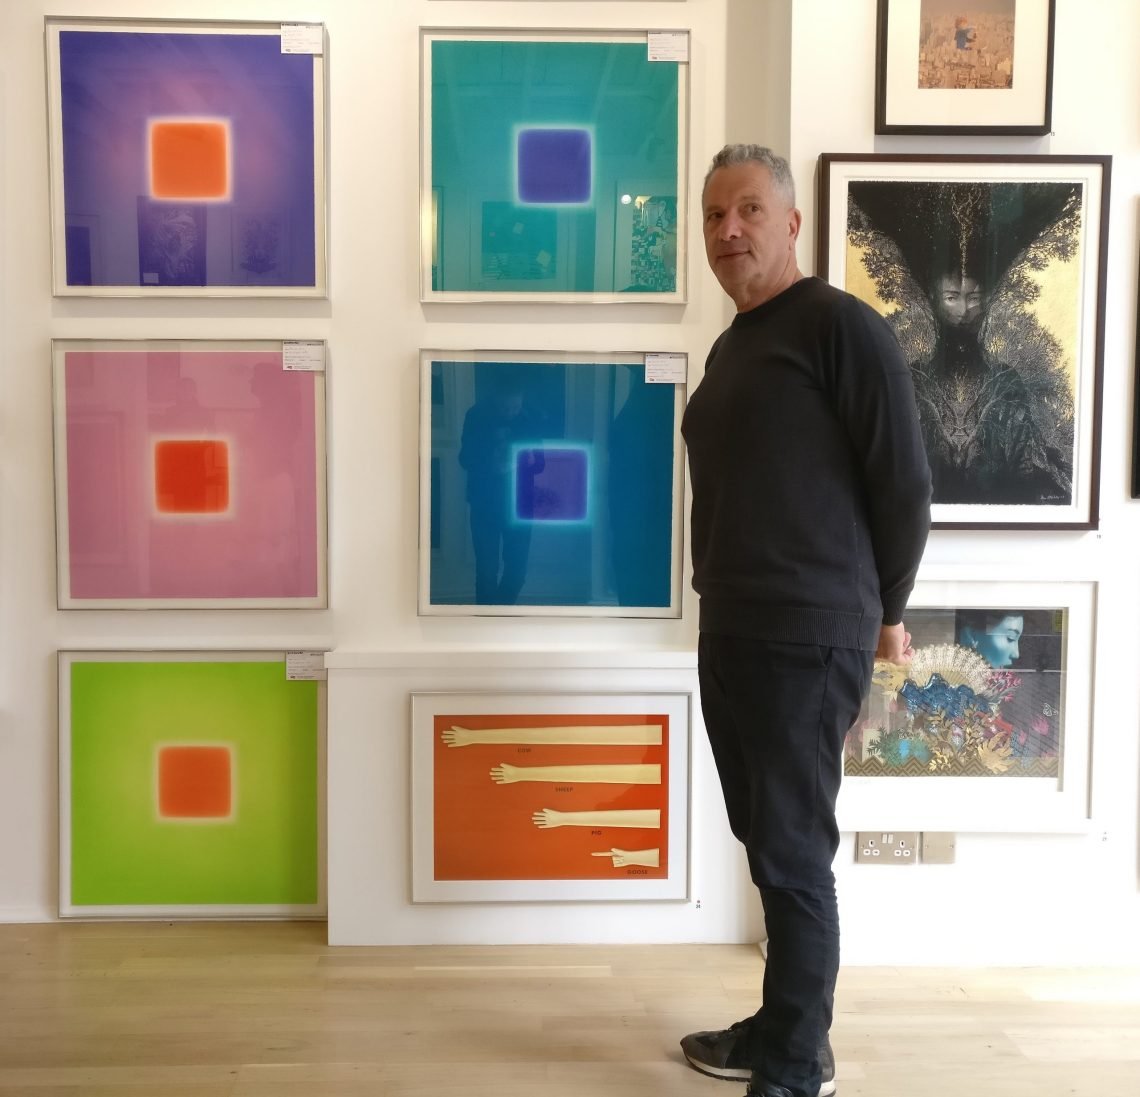 Lawrence Alkin in front of art inside the Art Republic Gallery